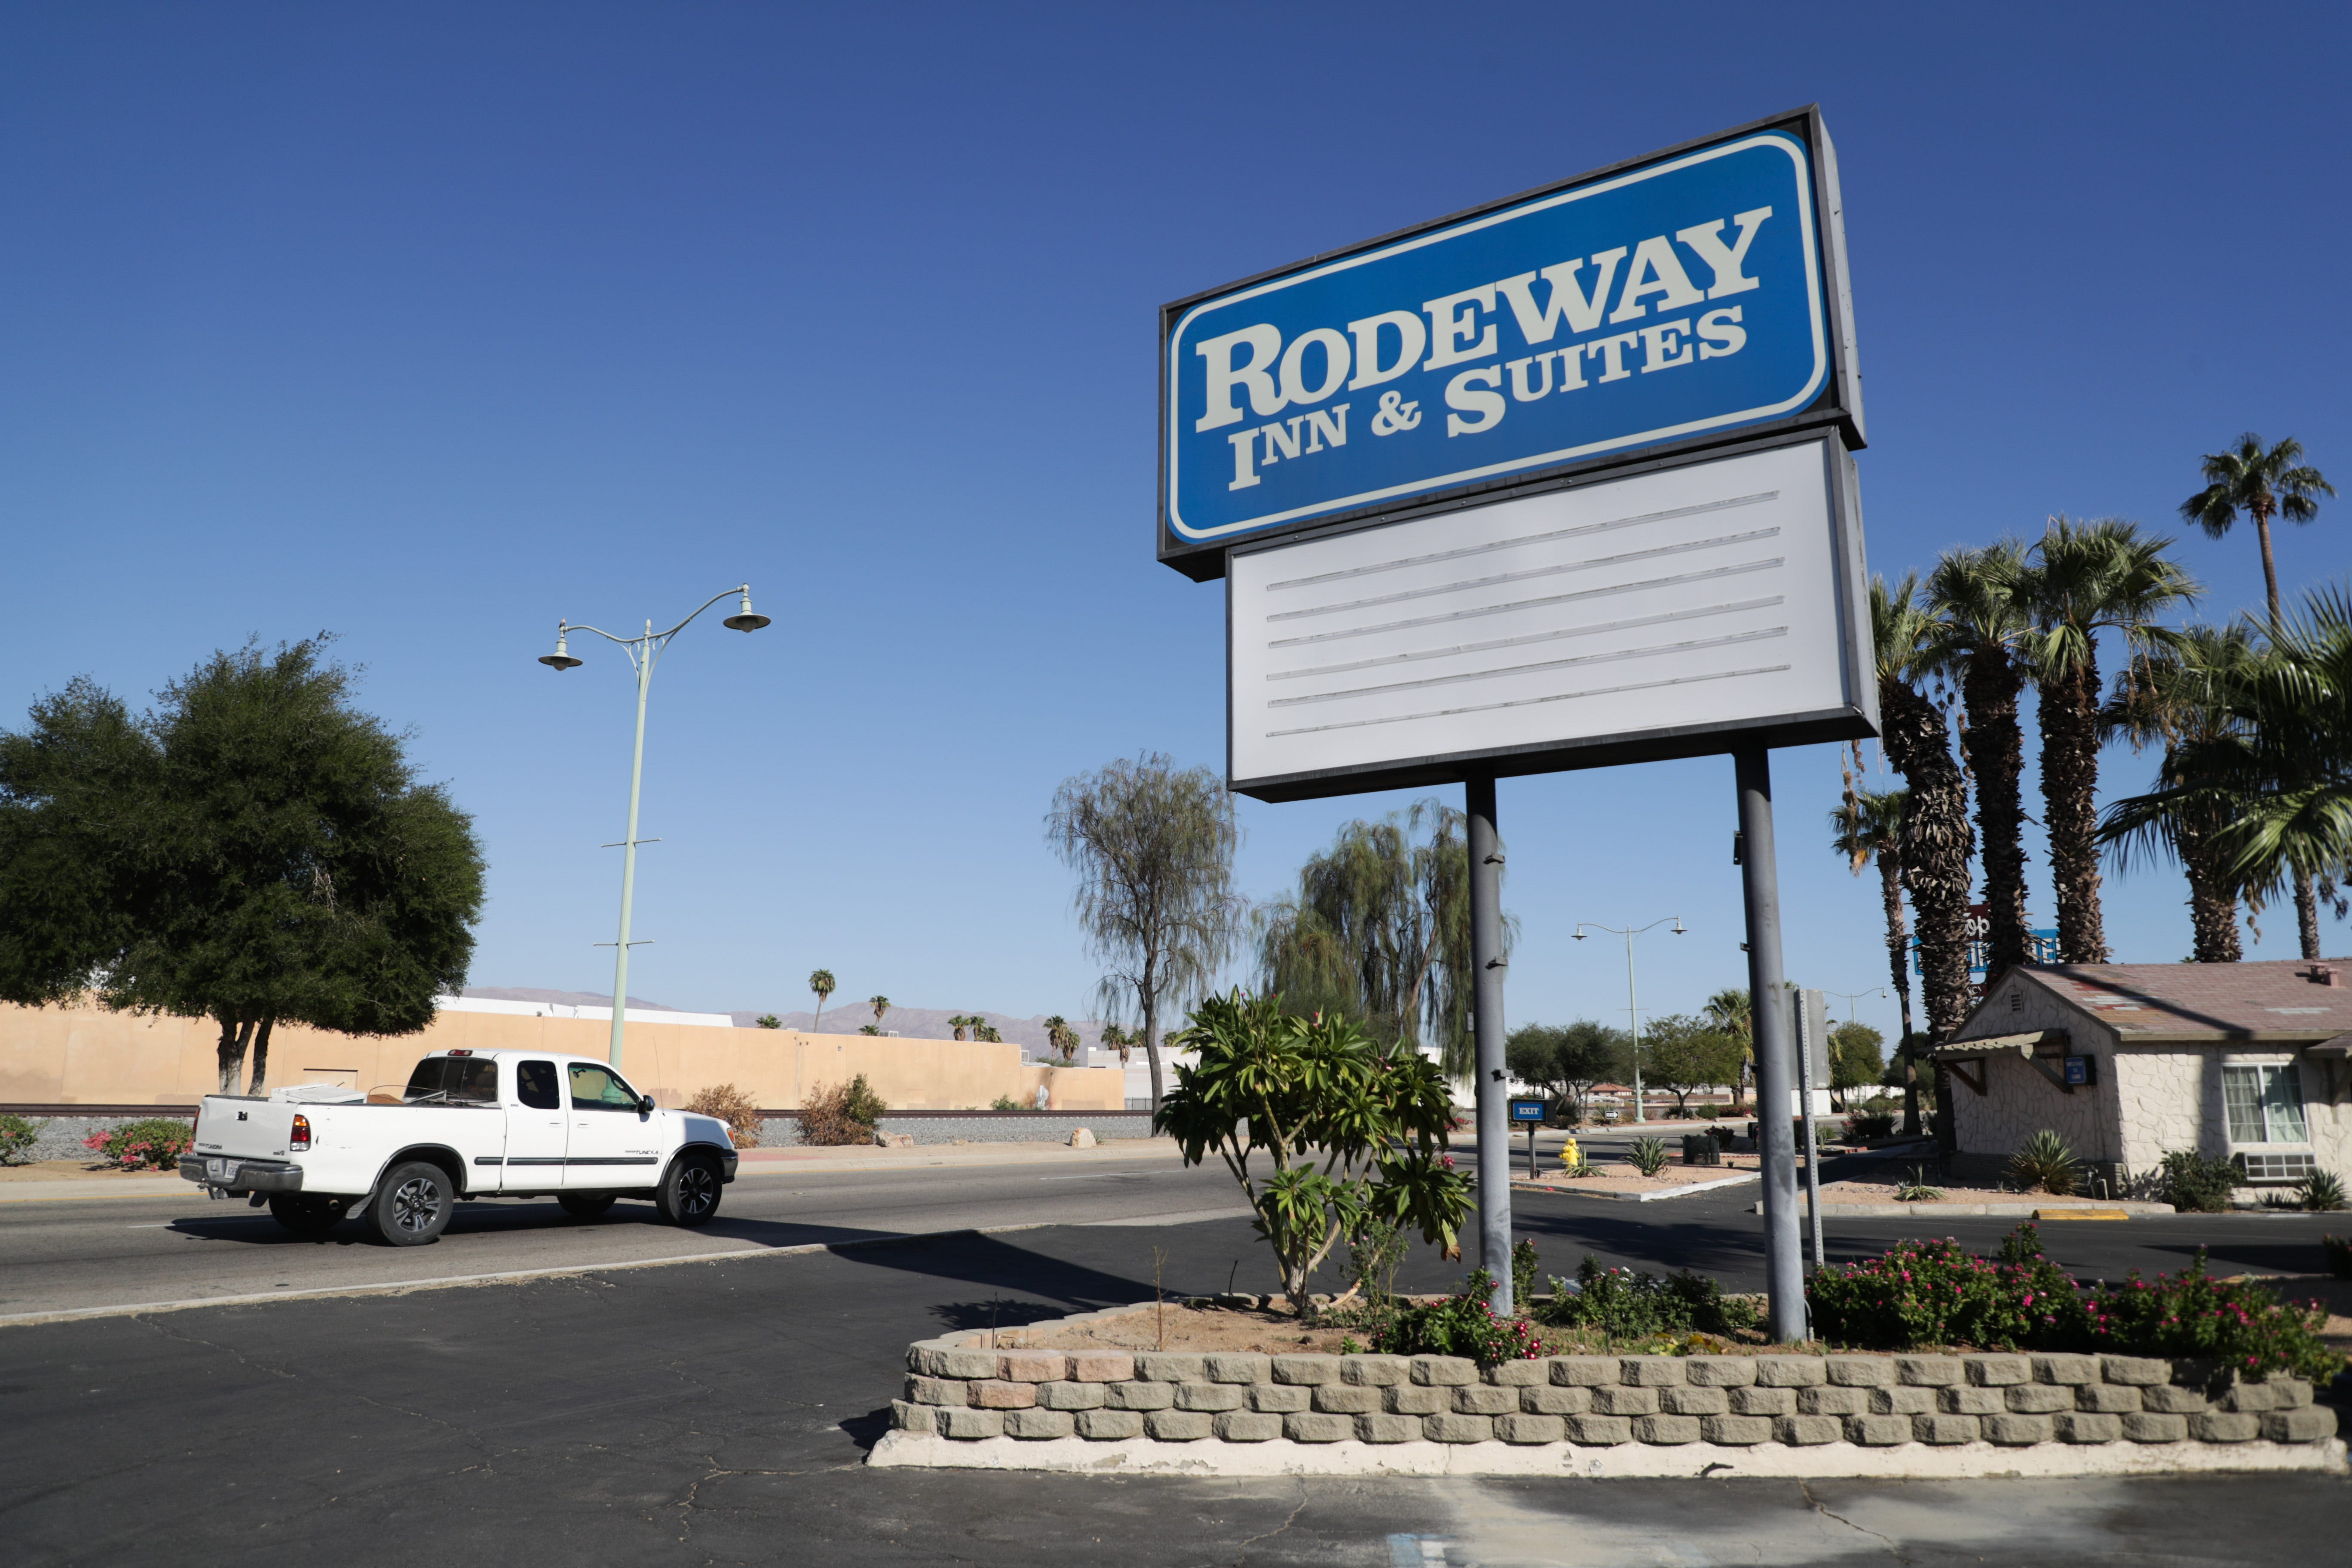 Rodeway Inn & Suites in Indio, Calif., partnered with the state for Project Roomkey, an effort by the state to house individuals experiencing homelessness during the COVID-19 pandemic.